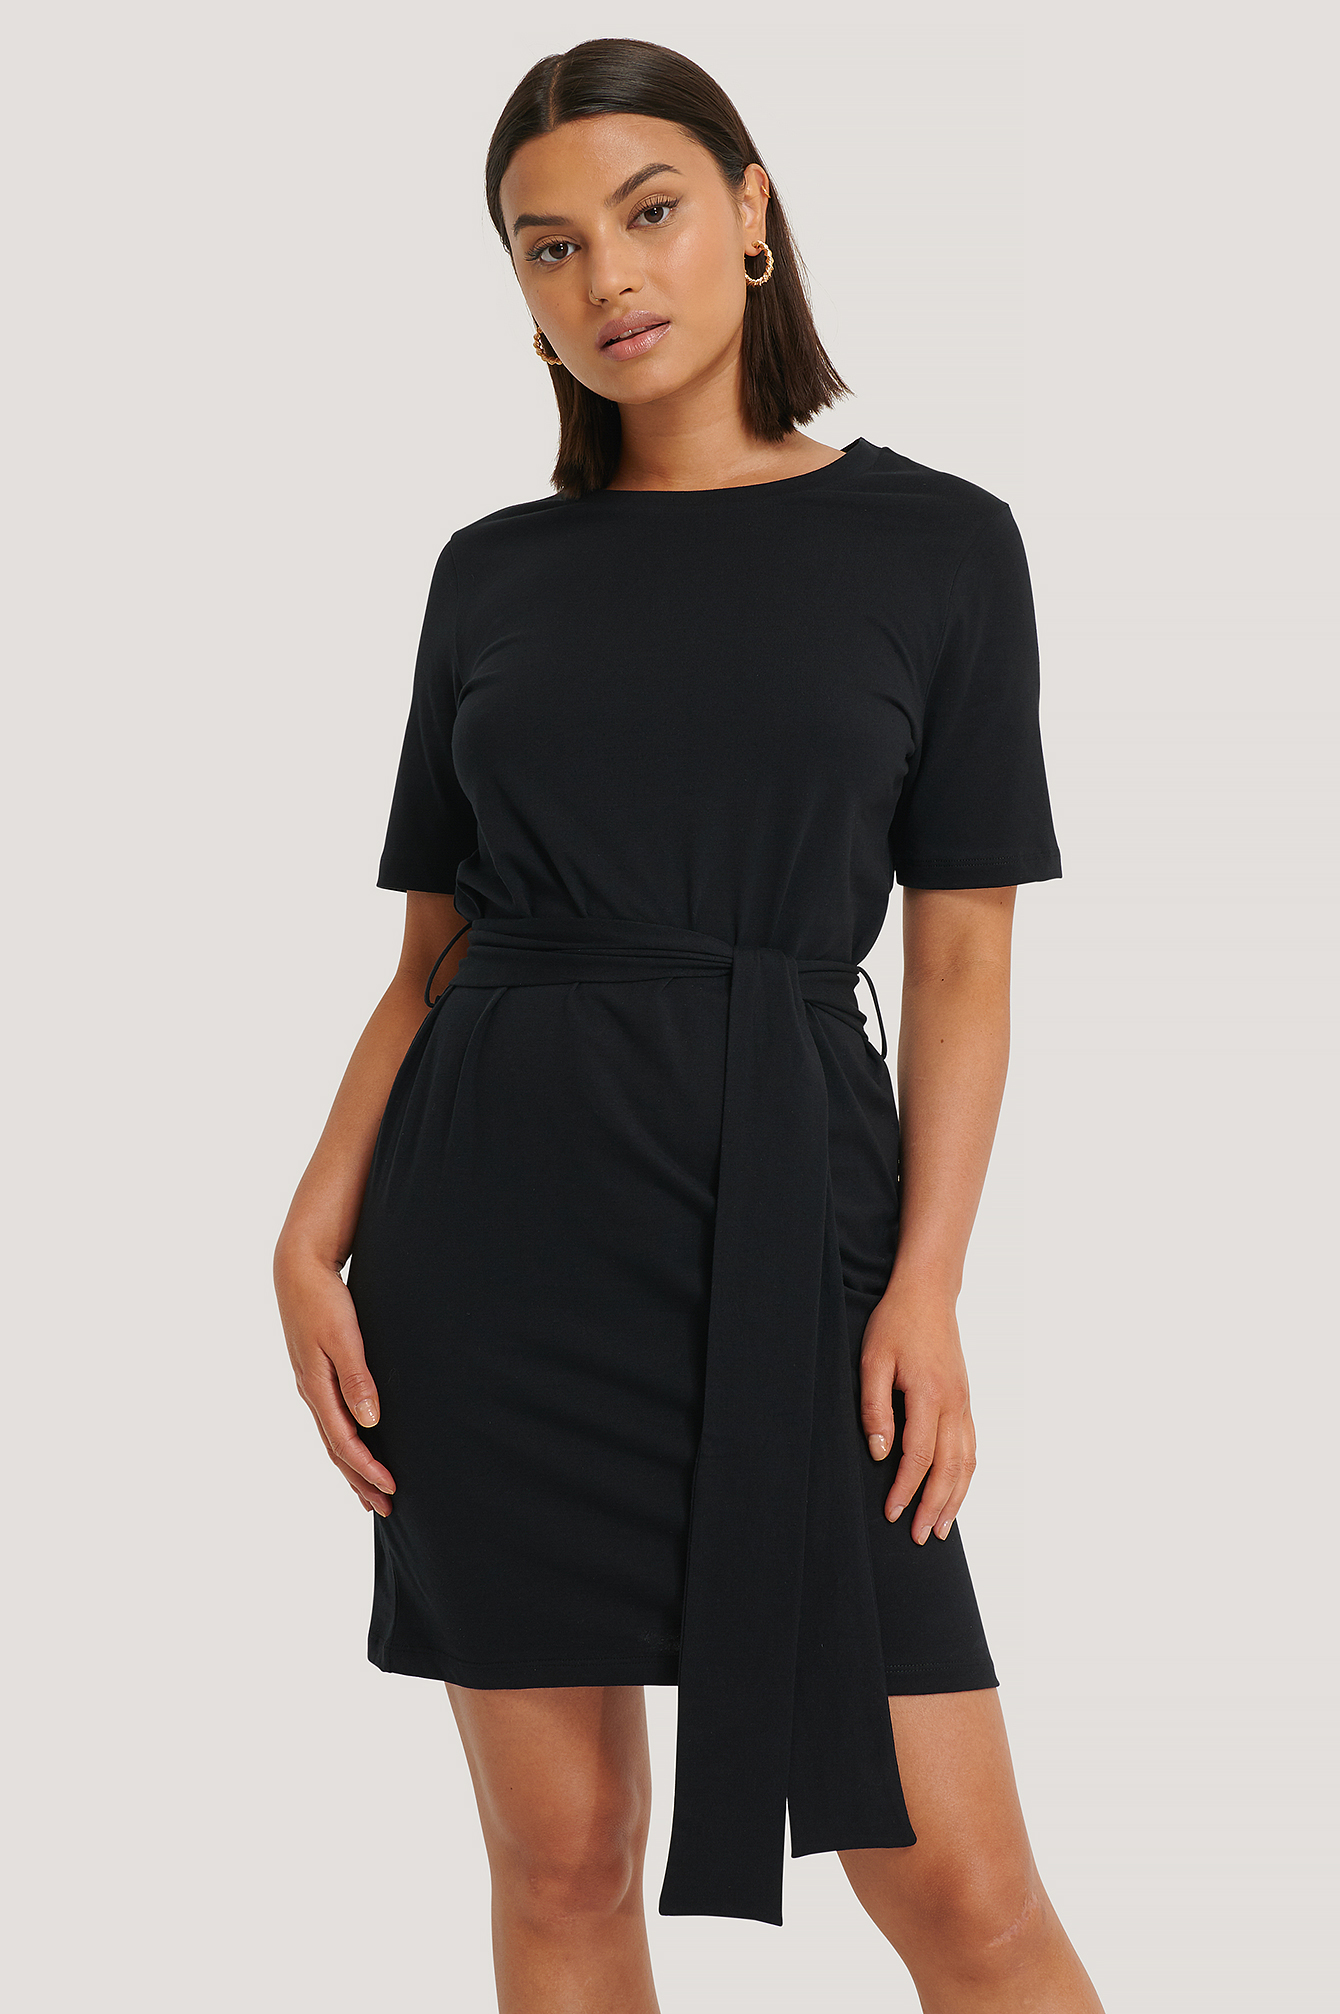 Deep Black Tie Waist T-shirt Dress